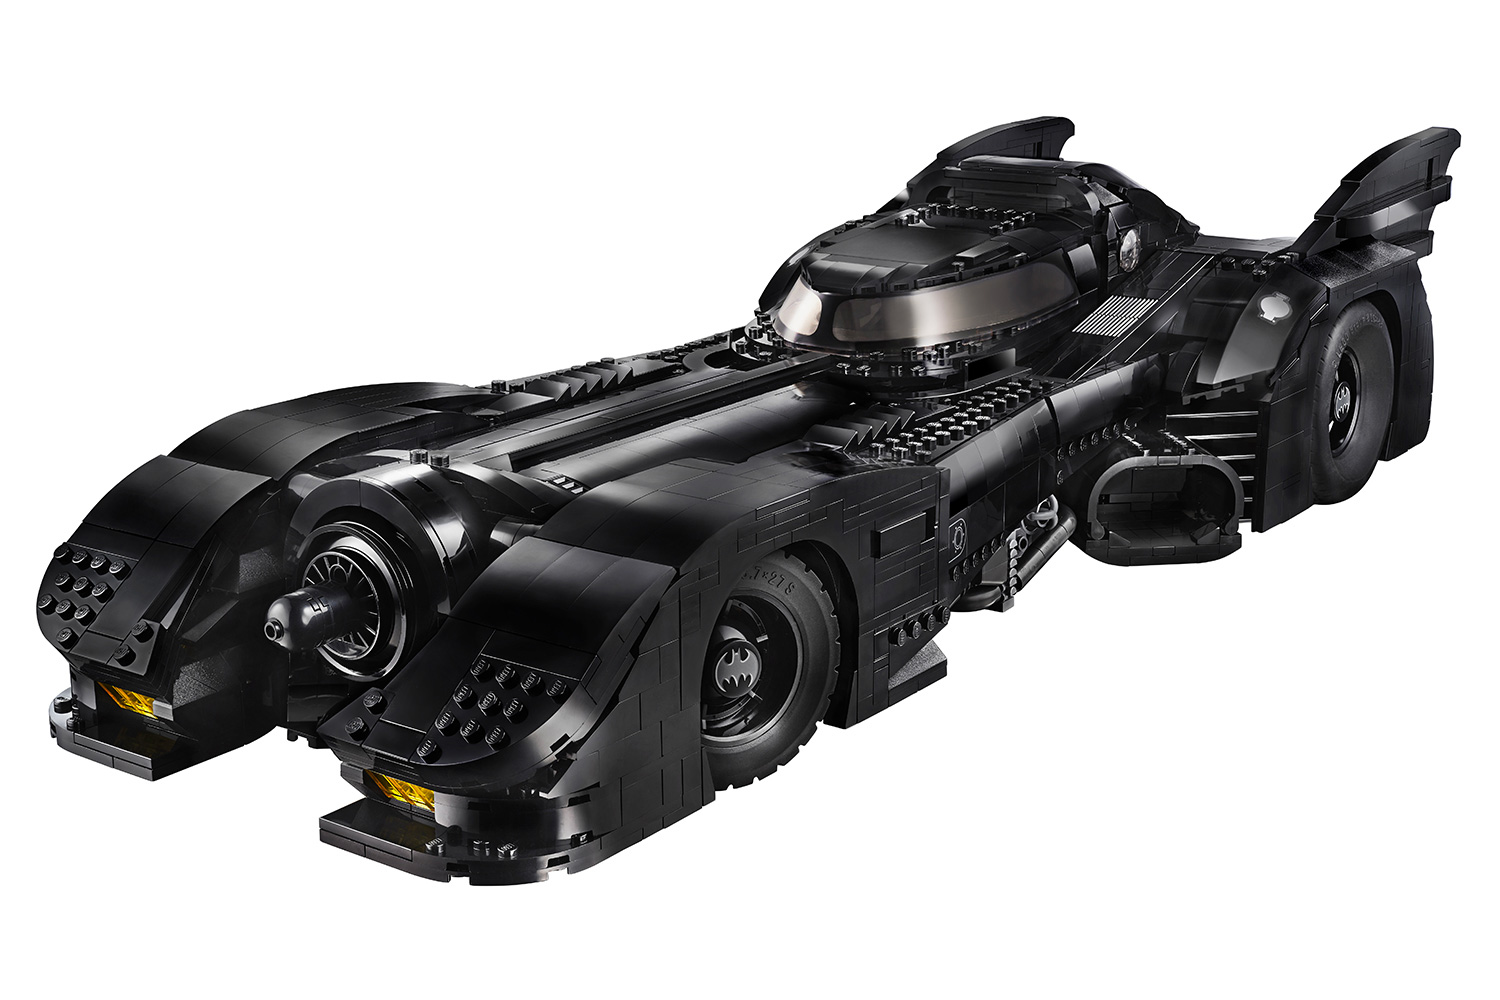 Tim Burton's <i>Batman</i> Celebrates 30 with a Lego Batmobile at werd.com